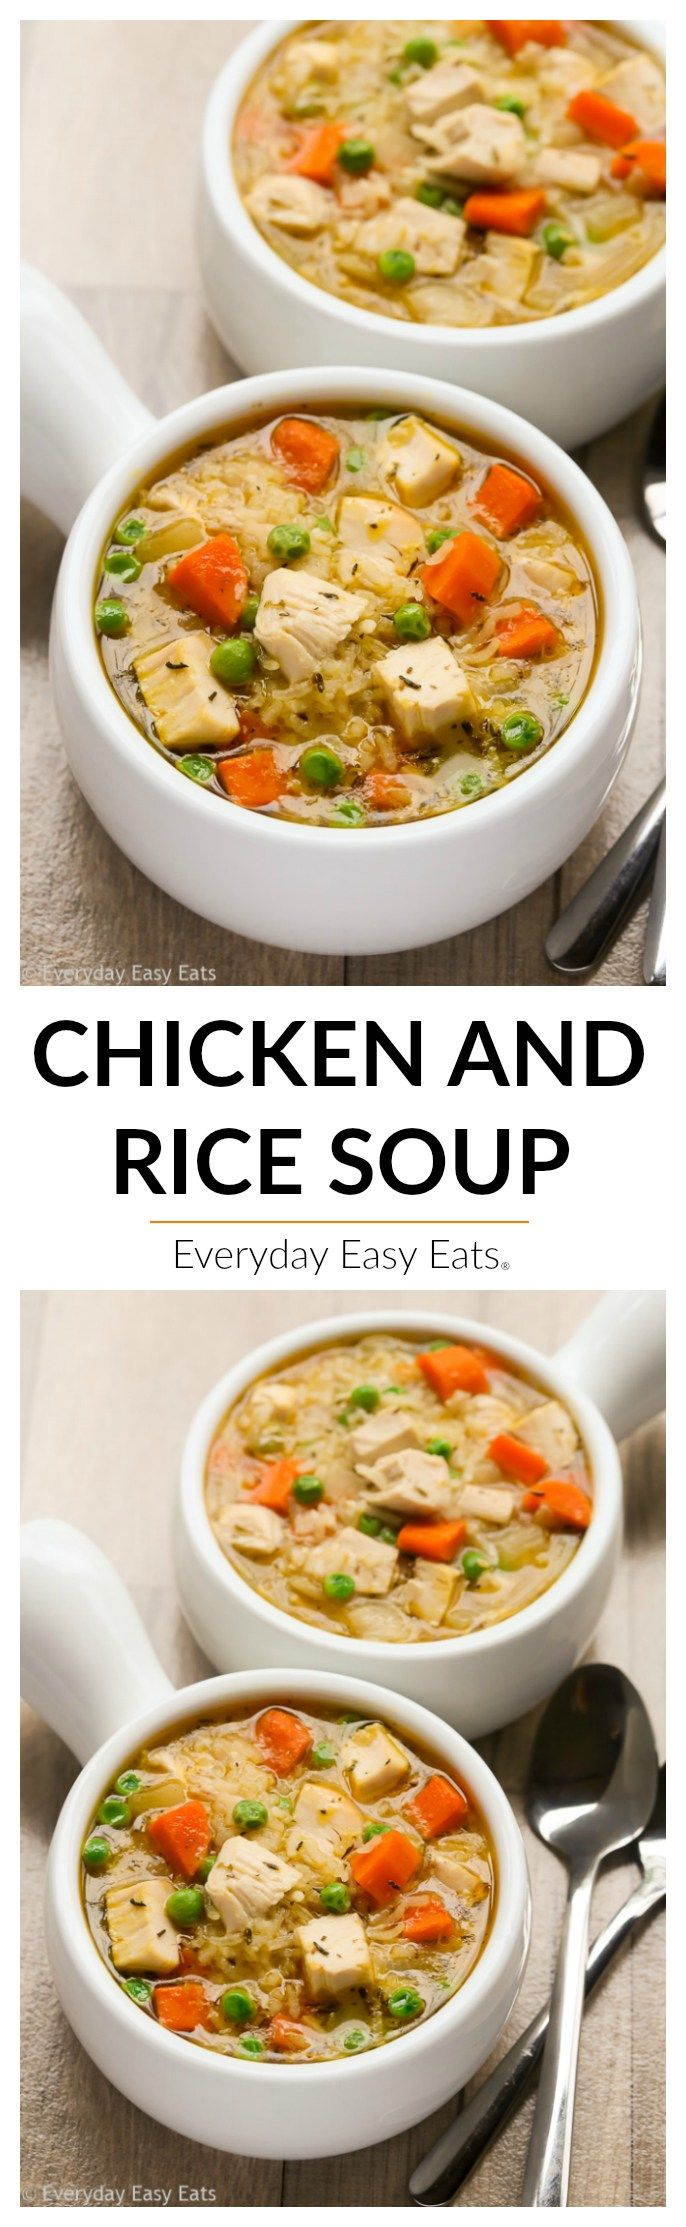 One Pot Chicken And Rice Soup Recipe Food Recipes Easy